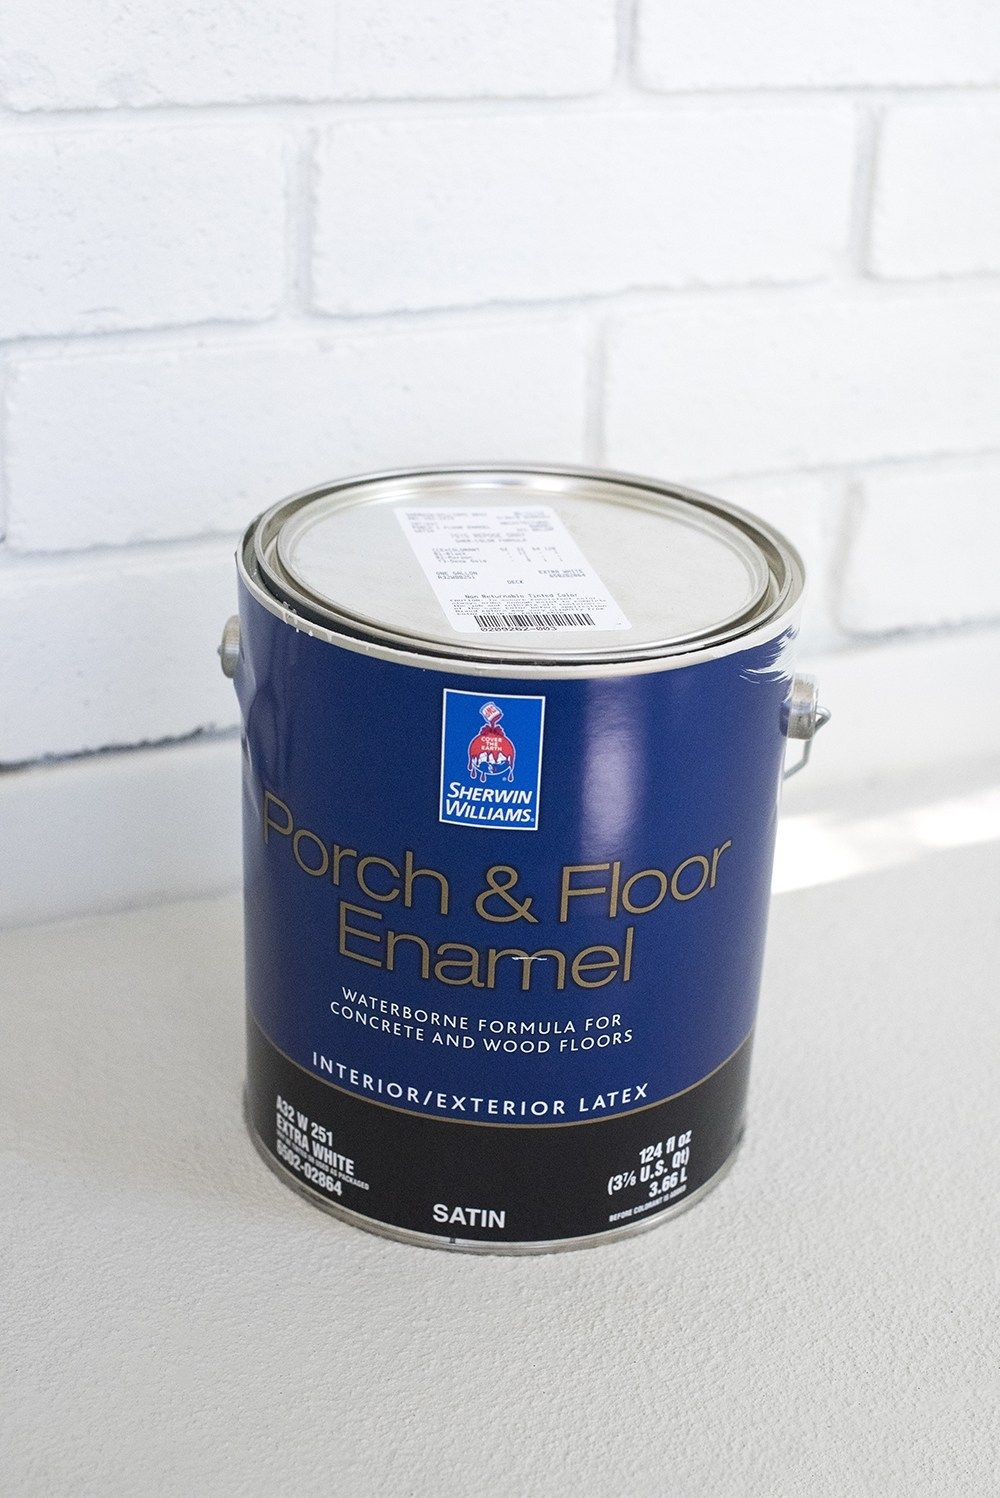 How To Paint Exterior Brick Room For Tuesday Blog Exterior Paint Brick Room Exterior Brick